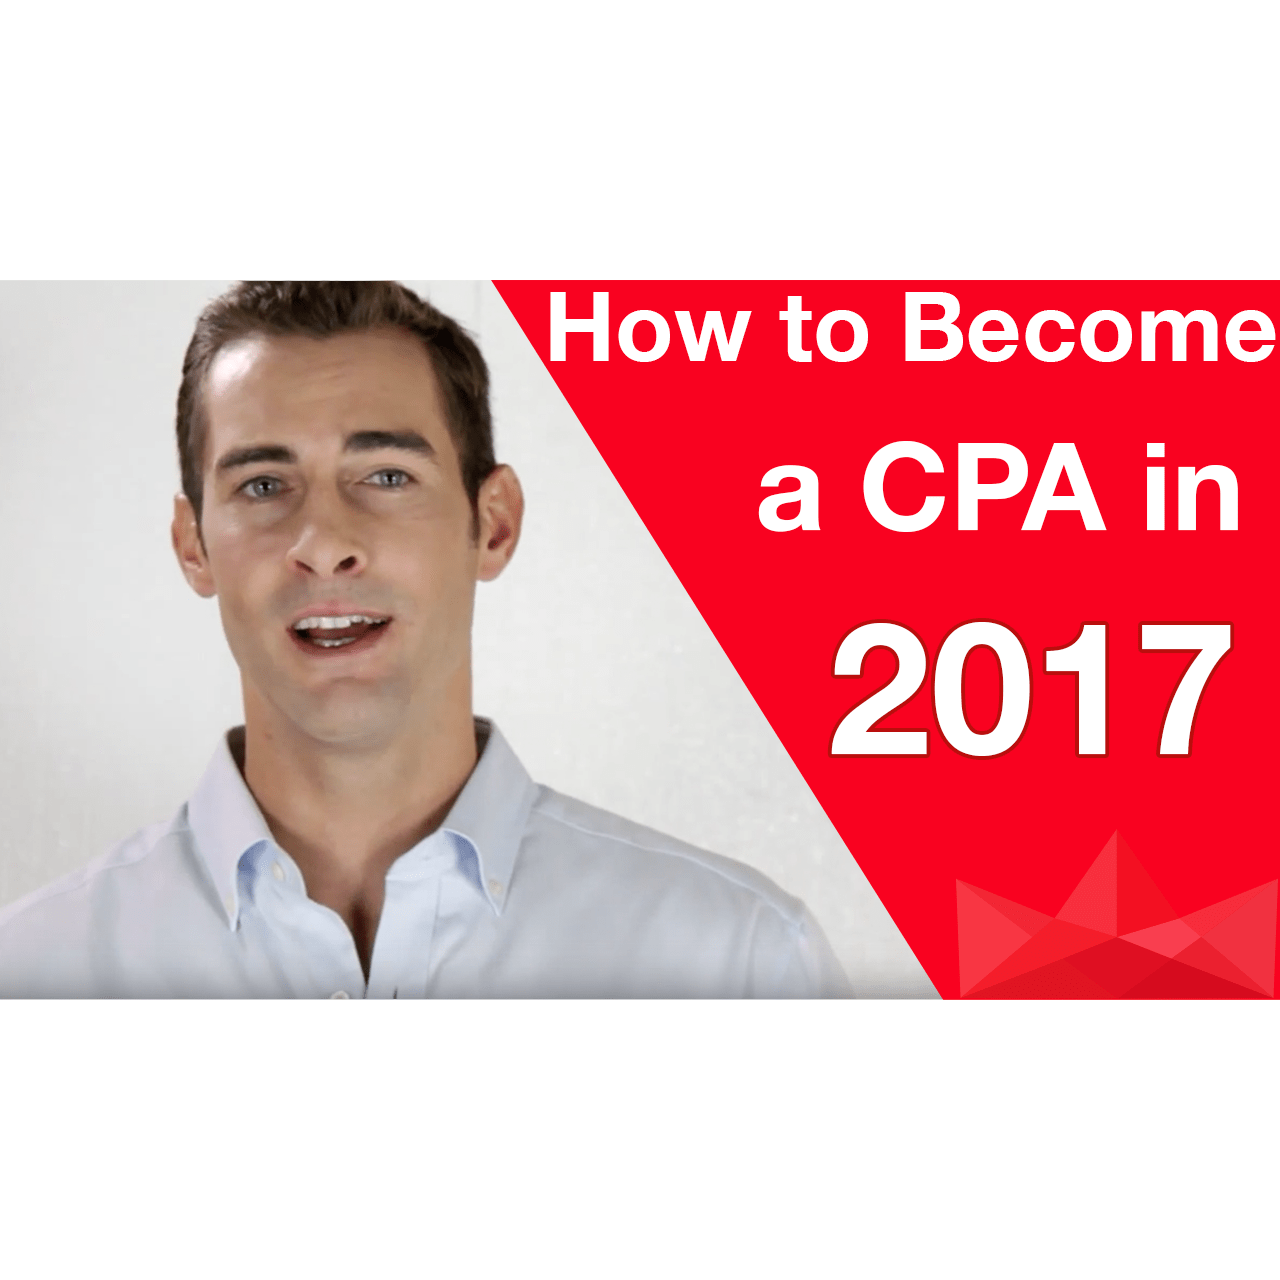 Bryce Welker, CPA on How to become a CPA